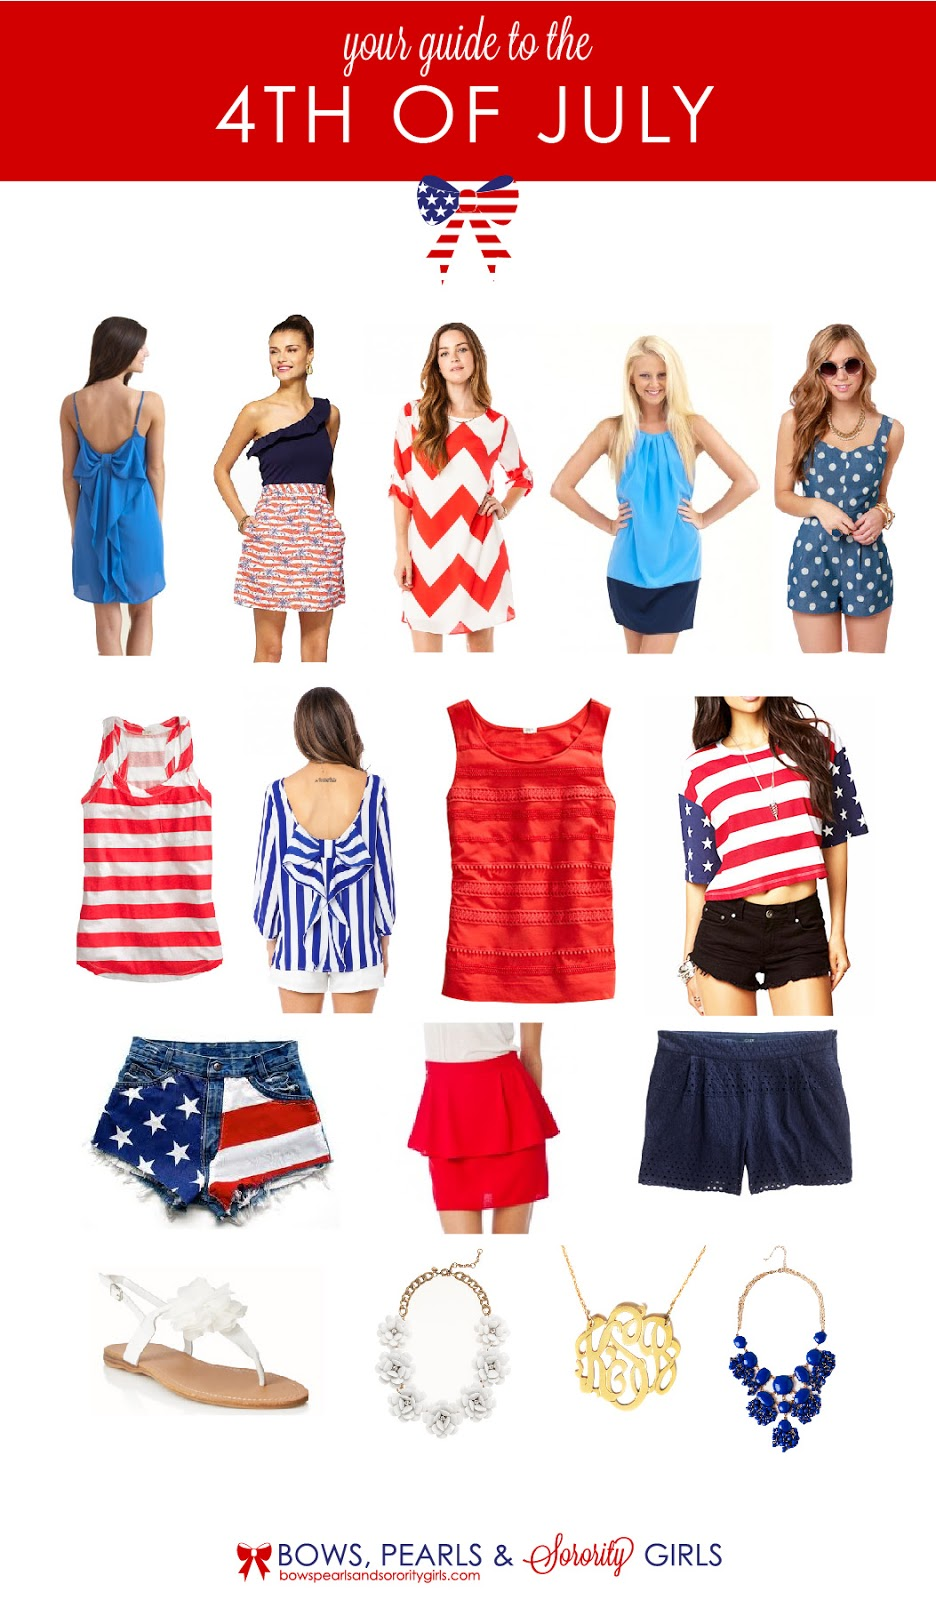 bows pearls sorority girls merica style guide